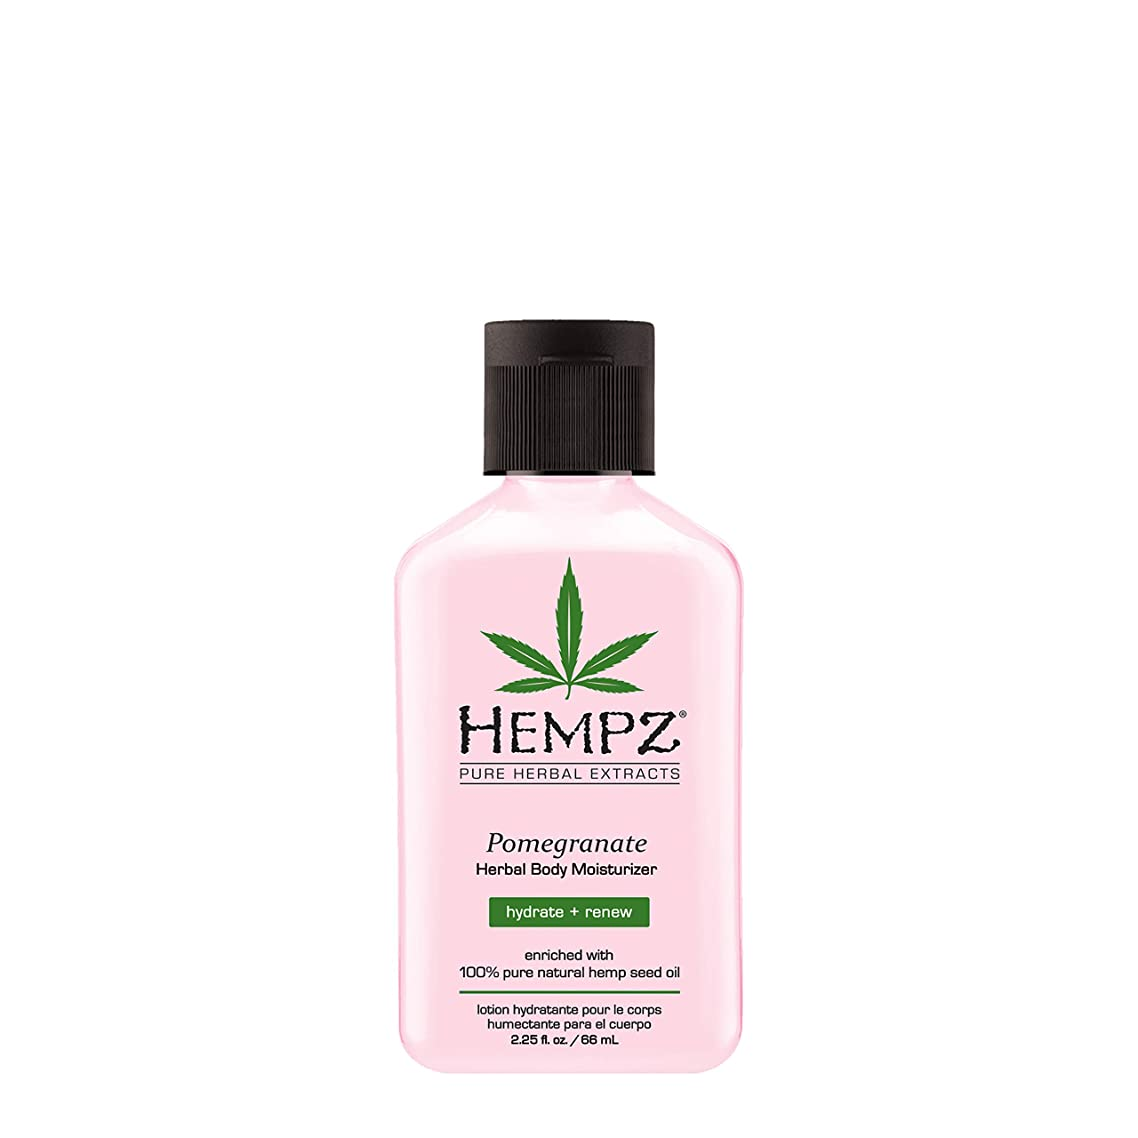 Hempz Herbal Body Moisturizer, Light Pink, Pomegranate, 2.25 Fluid Ounce